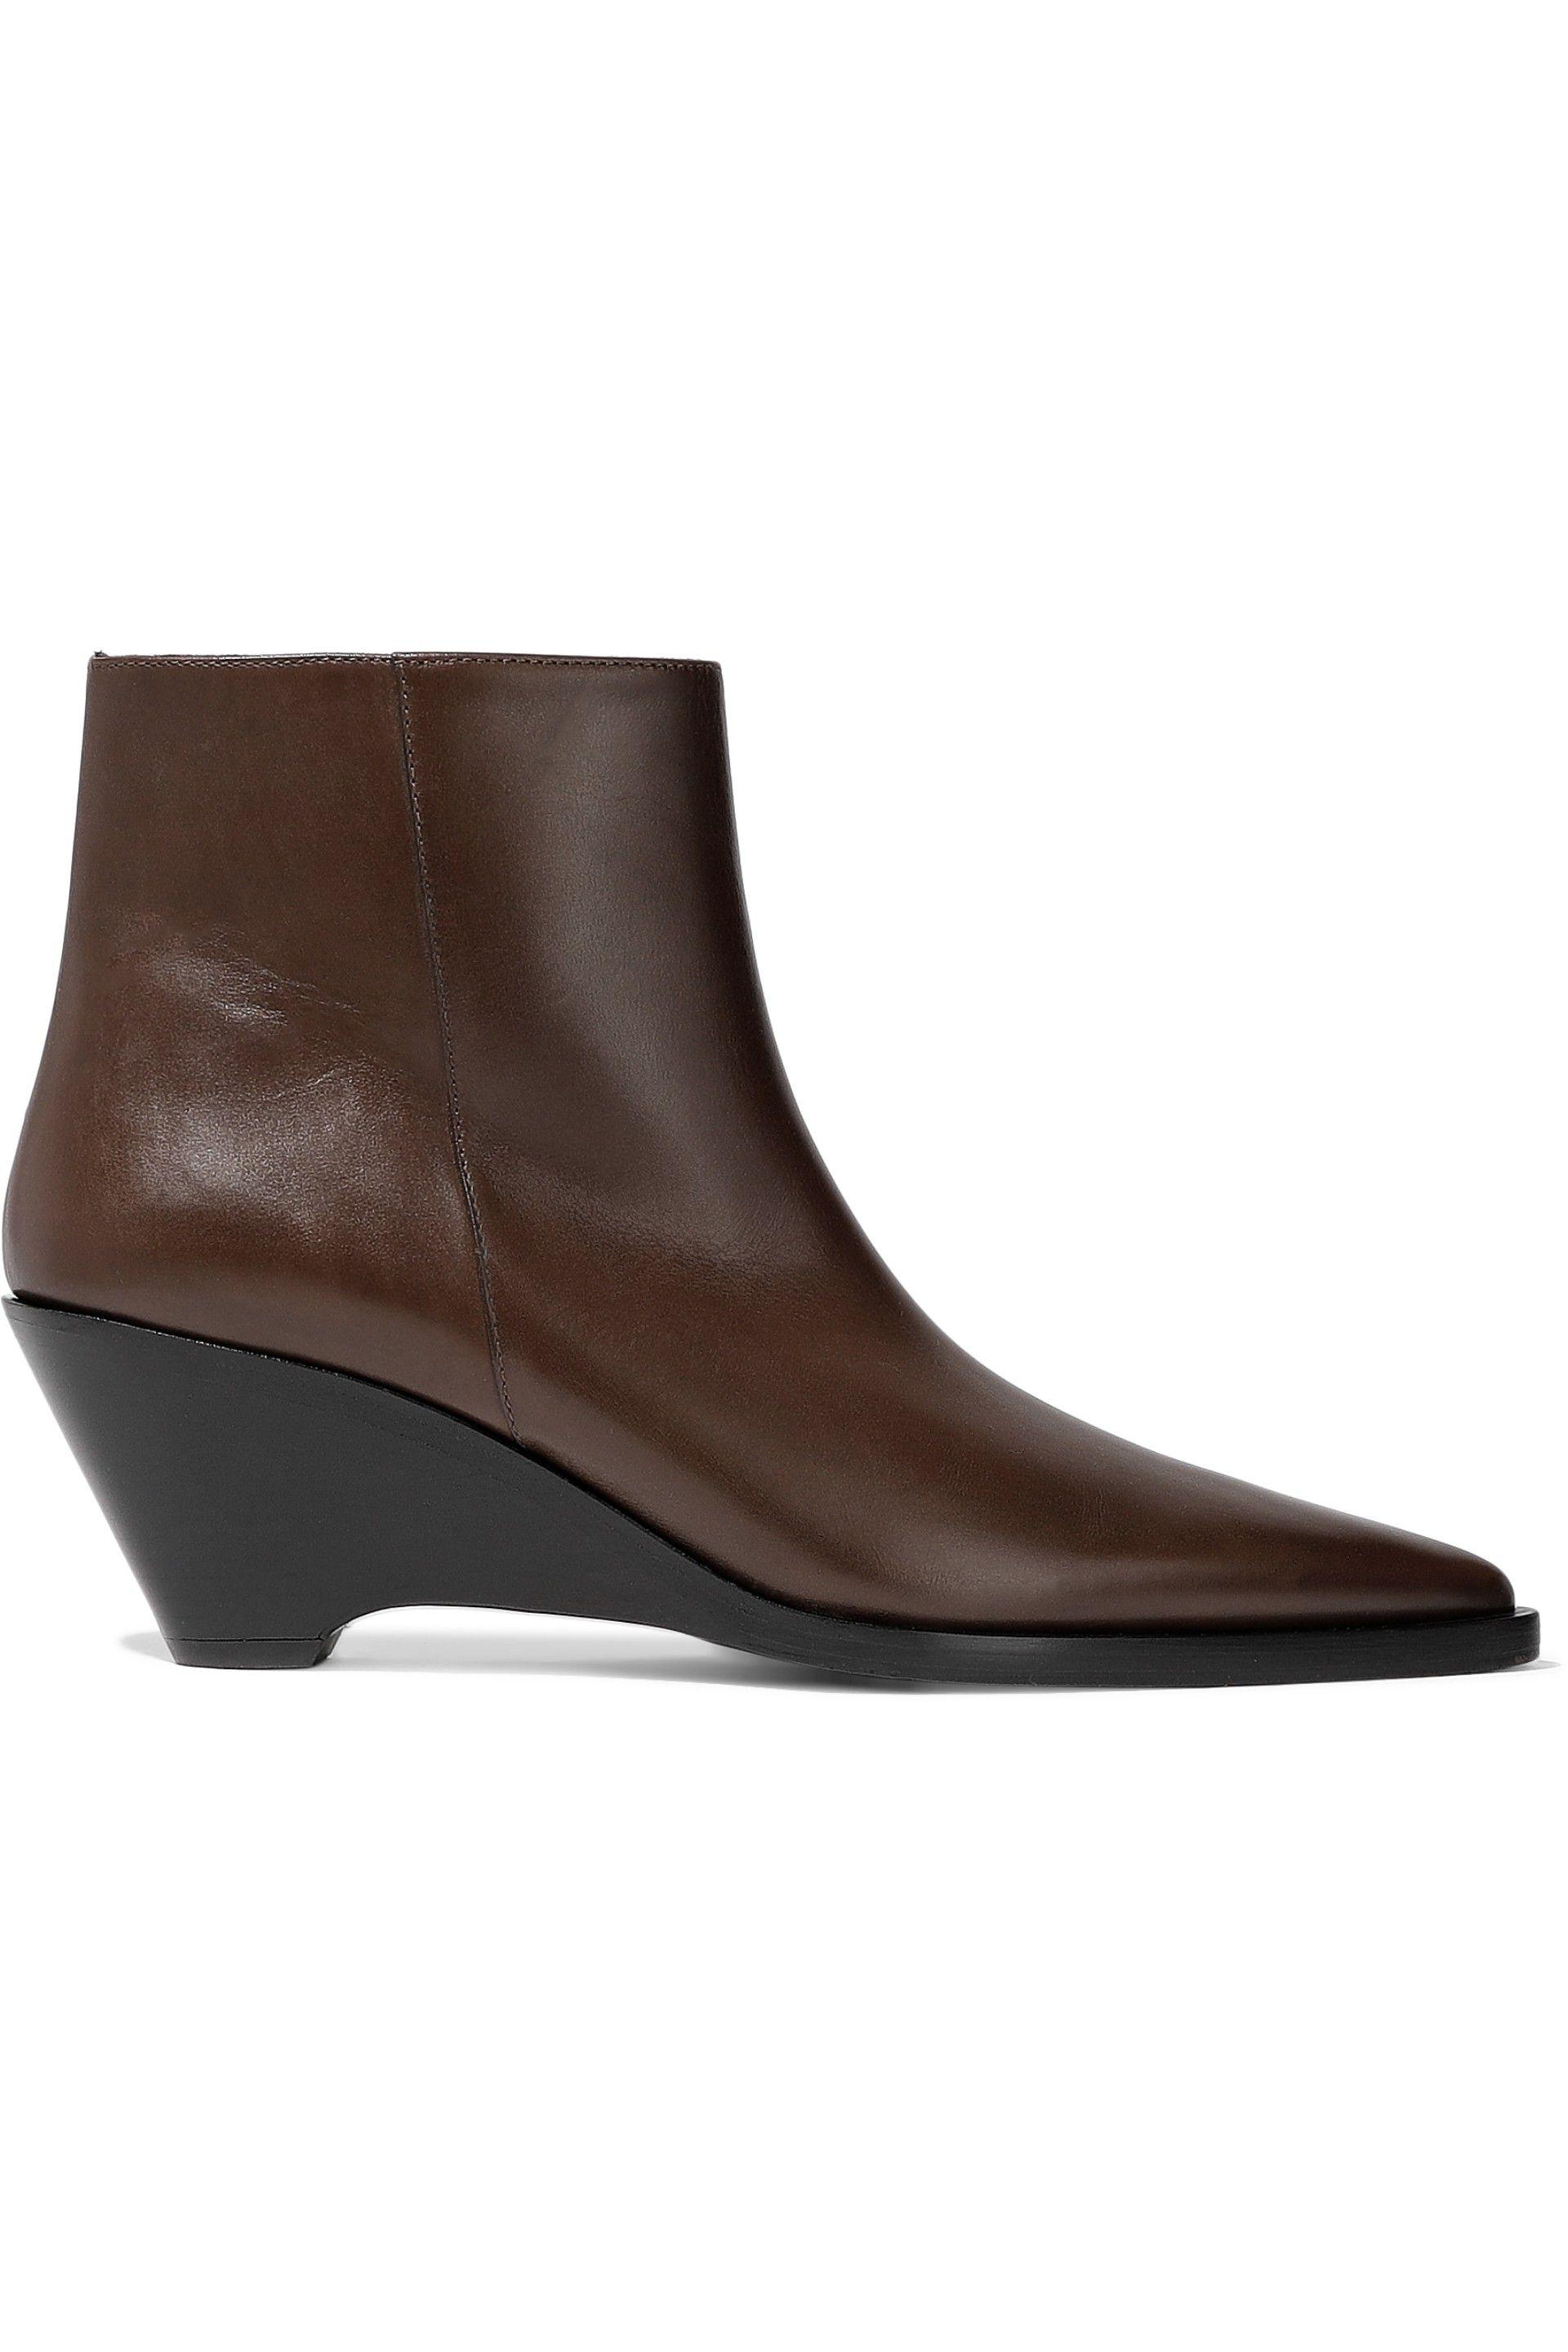 e9d6bb59efff Lyst - Acne Studios Woman Cony Leather Ankle Boots Chocolate in Brown